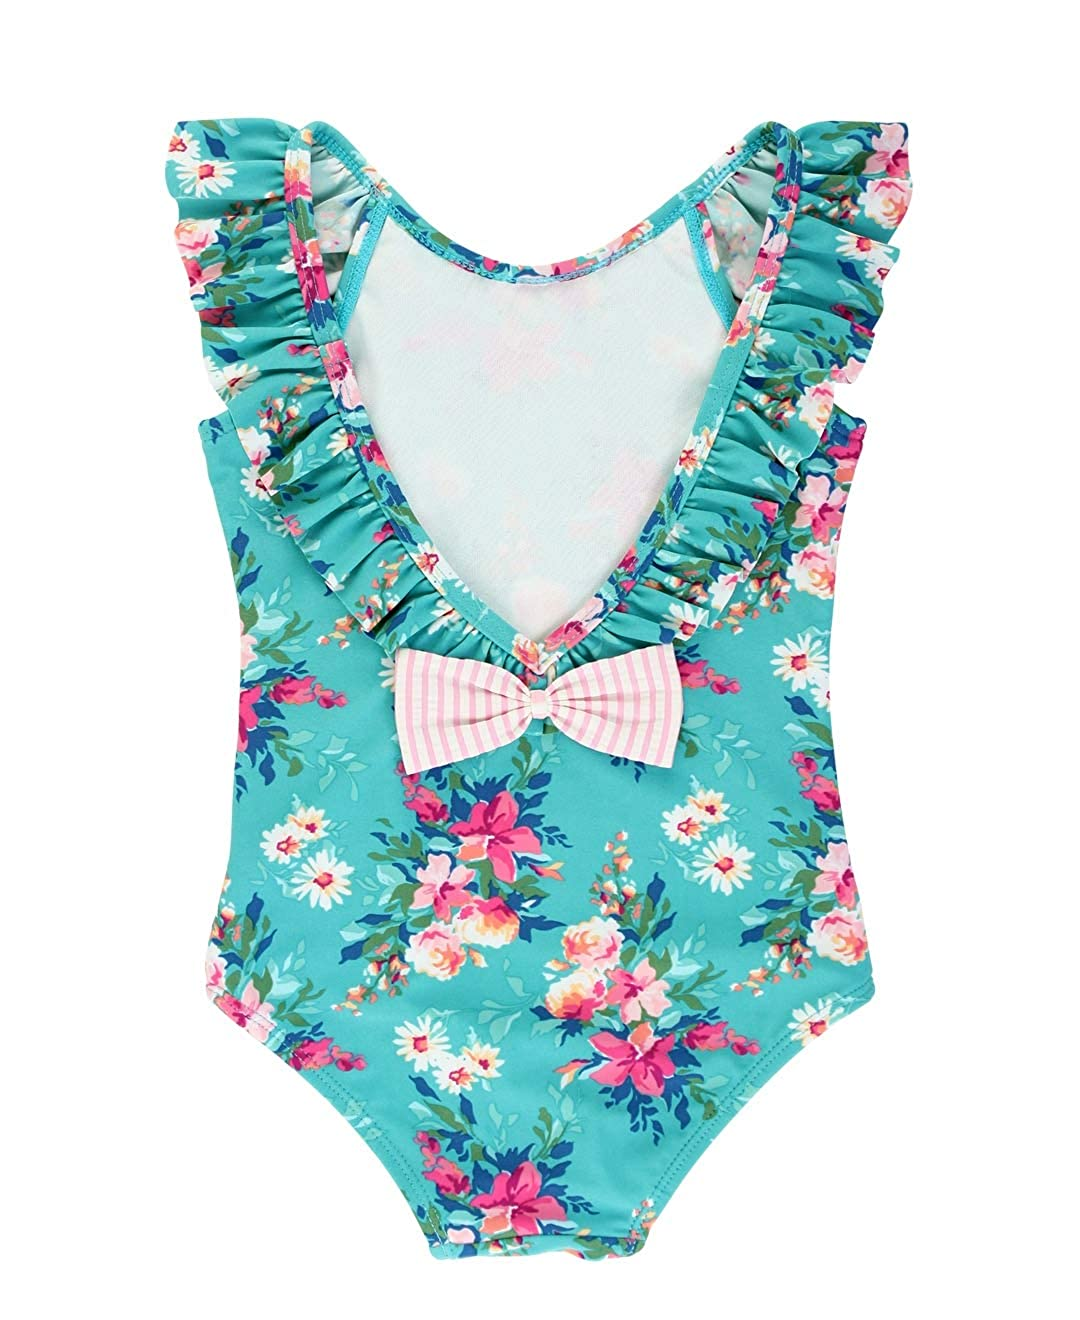 12-18m RuffleButts Baby//Toddler Girls Fancy Me Floral Ruffle One Piece